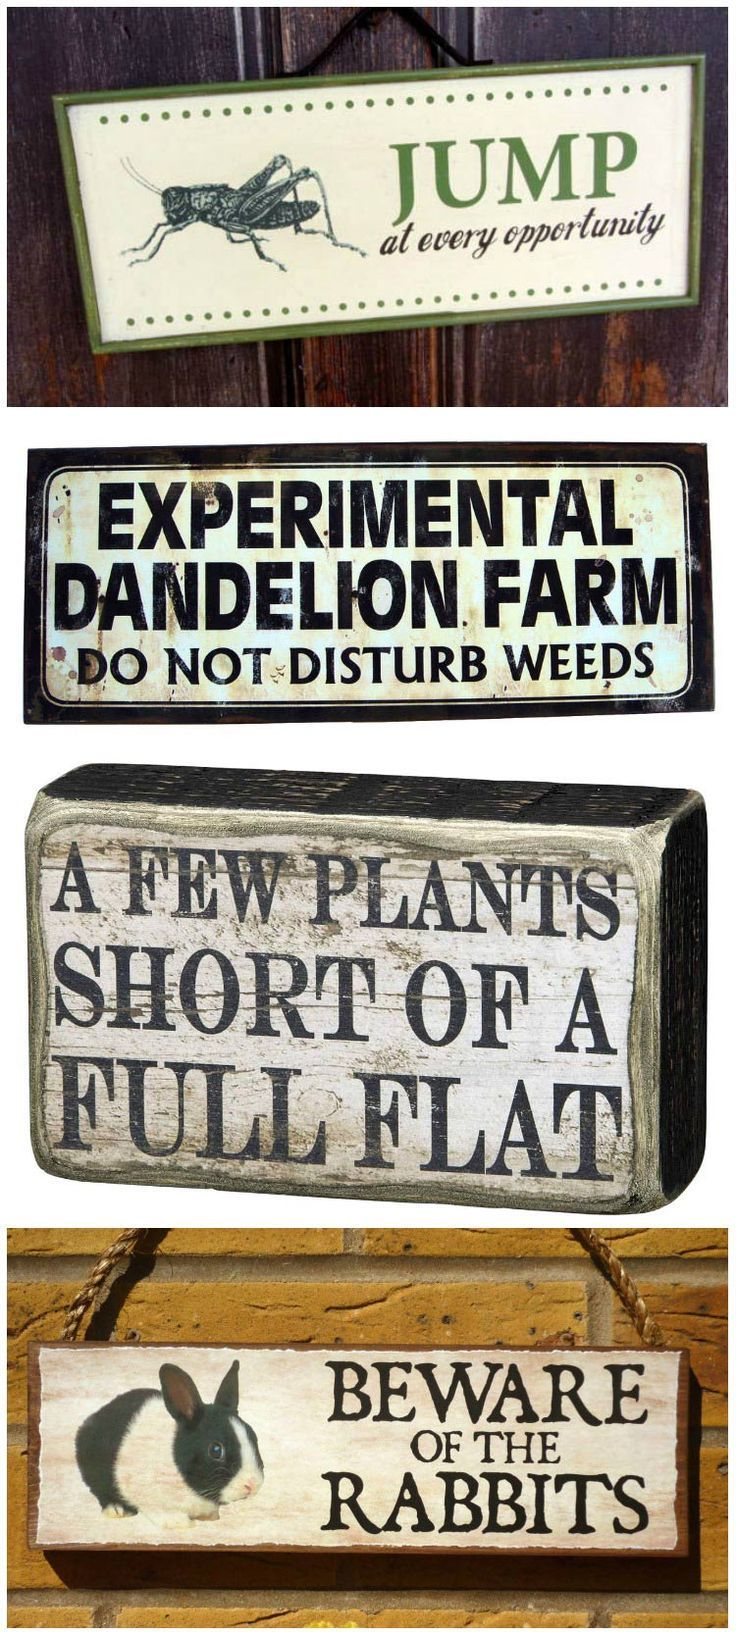 What's your garden sign? Whether you want it funny, philosophical, ironic, insightful, or informative, there's a garden sign